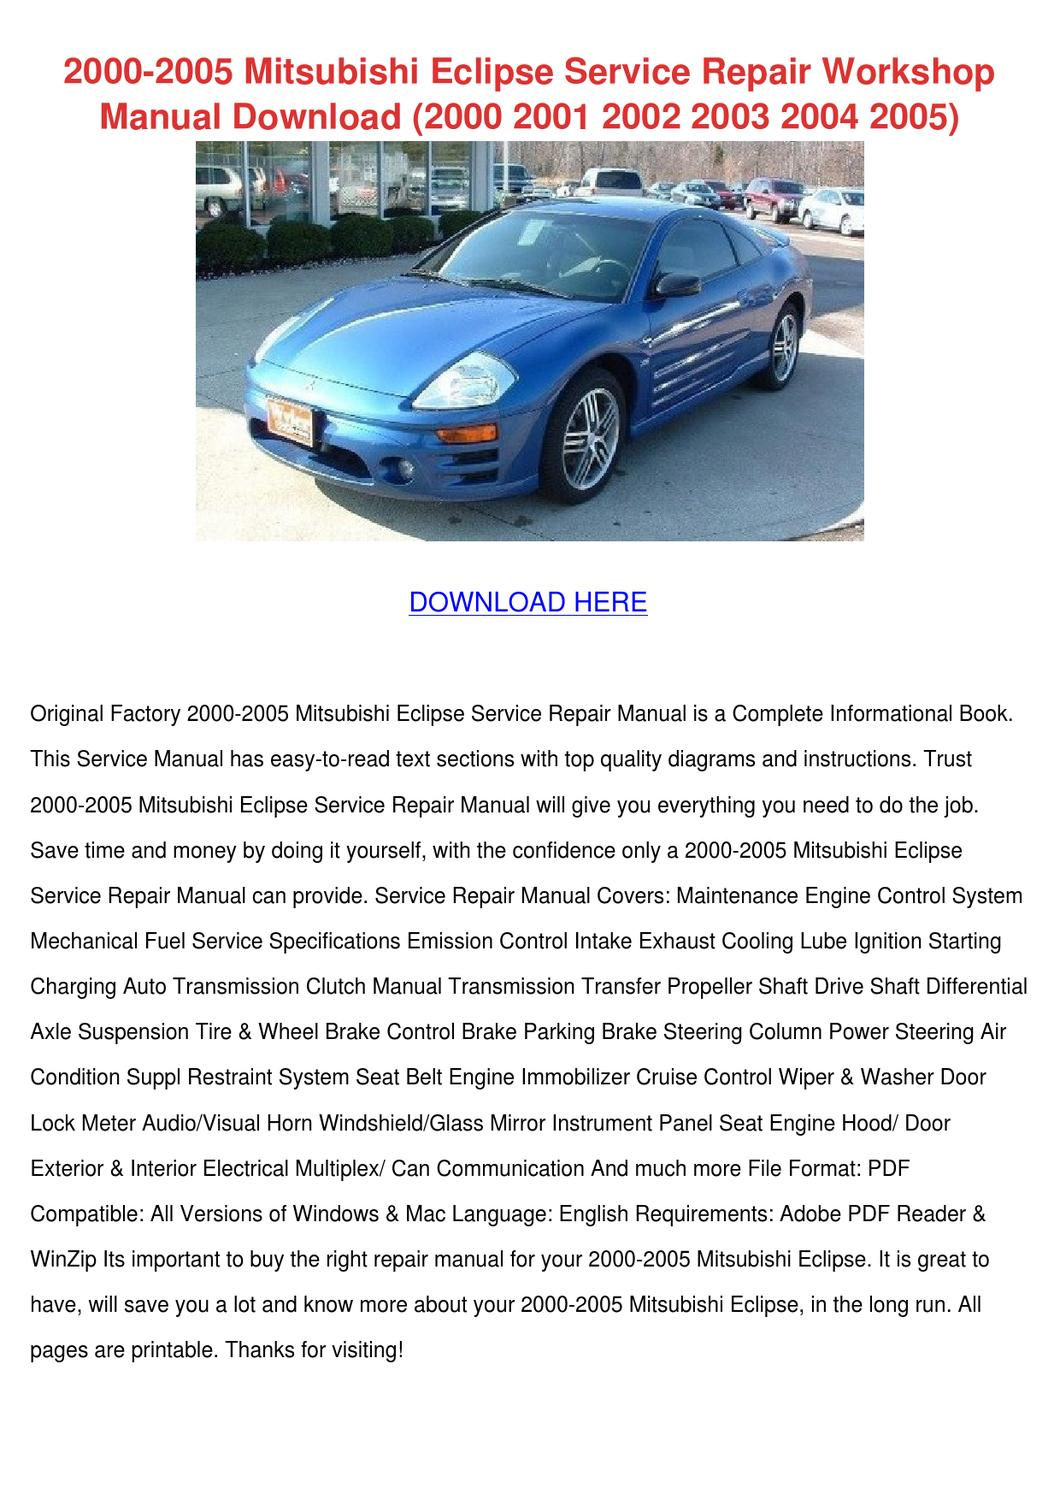 2000 2005 Mitsubishi Eclipse Service Repair W by Josefina Hotalen - issuu